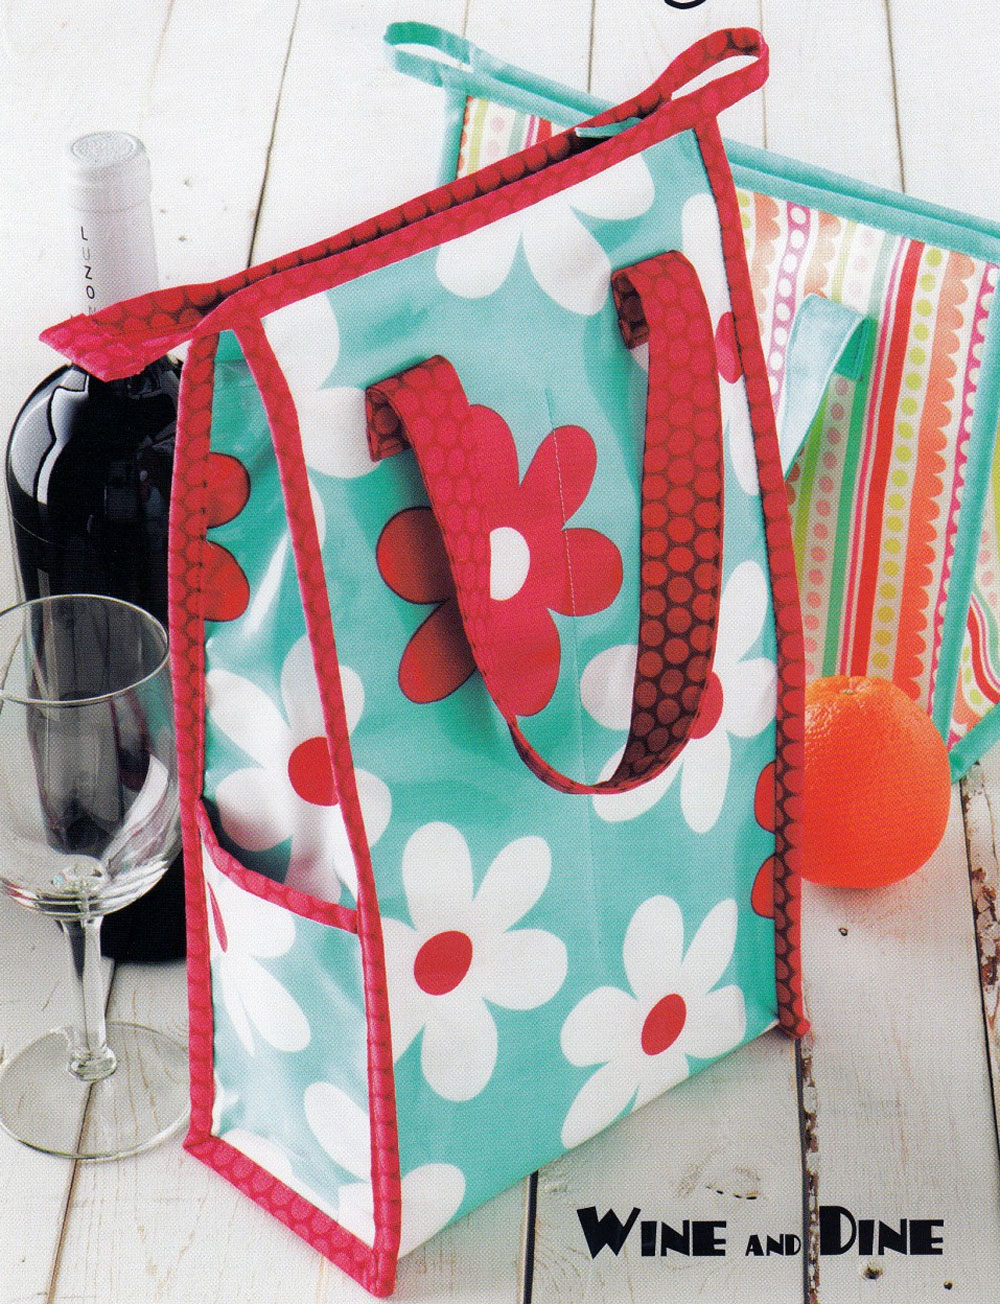 Wine-and-Dine-bag-pattern-Atkinson-Designs-1